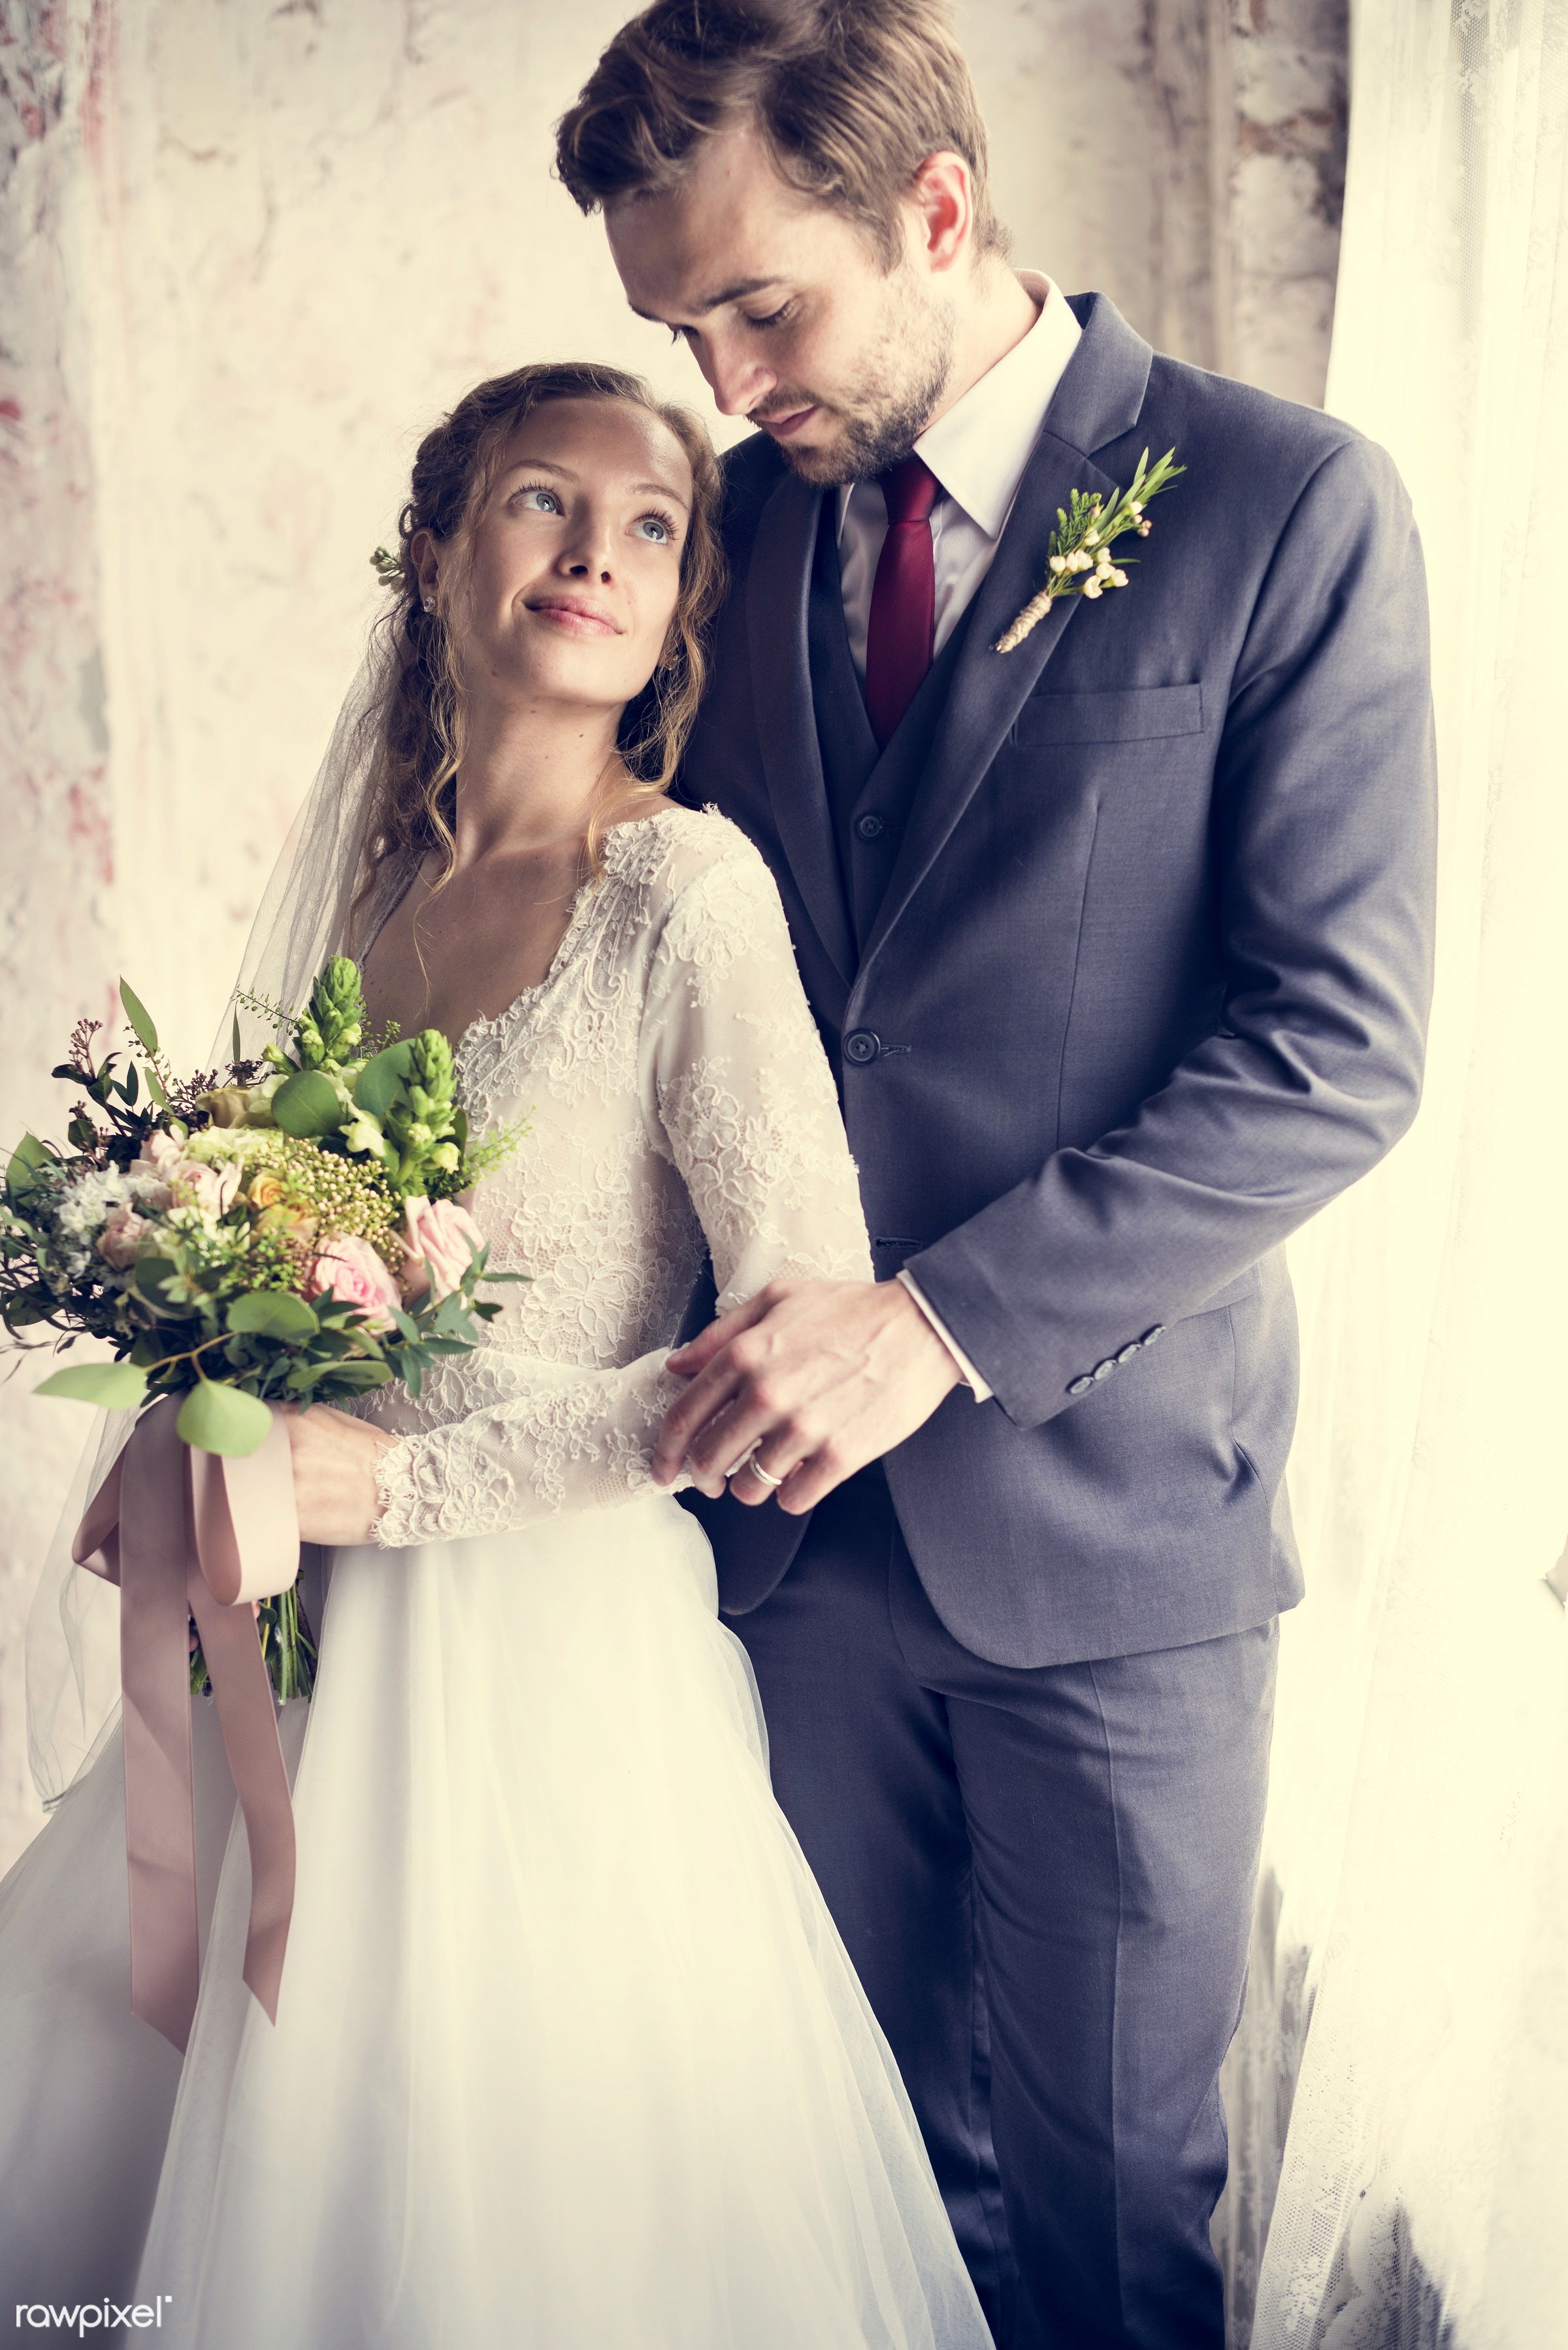 bouquet, person, hug, holding, smitten, people, together, caucasian, glamour, love, woman, gown, flowers, cheerful, marry,...